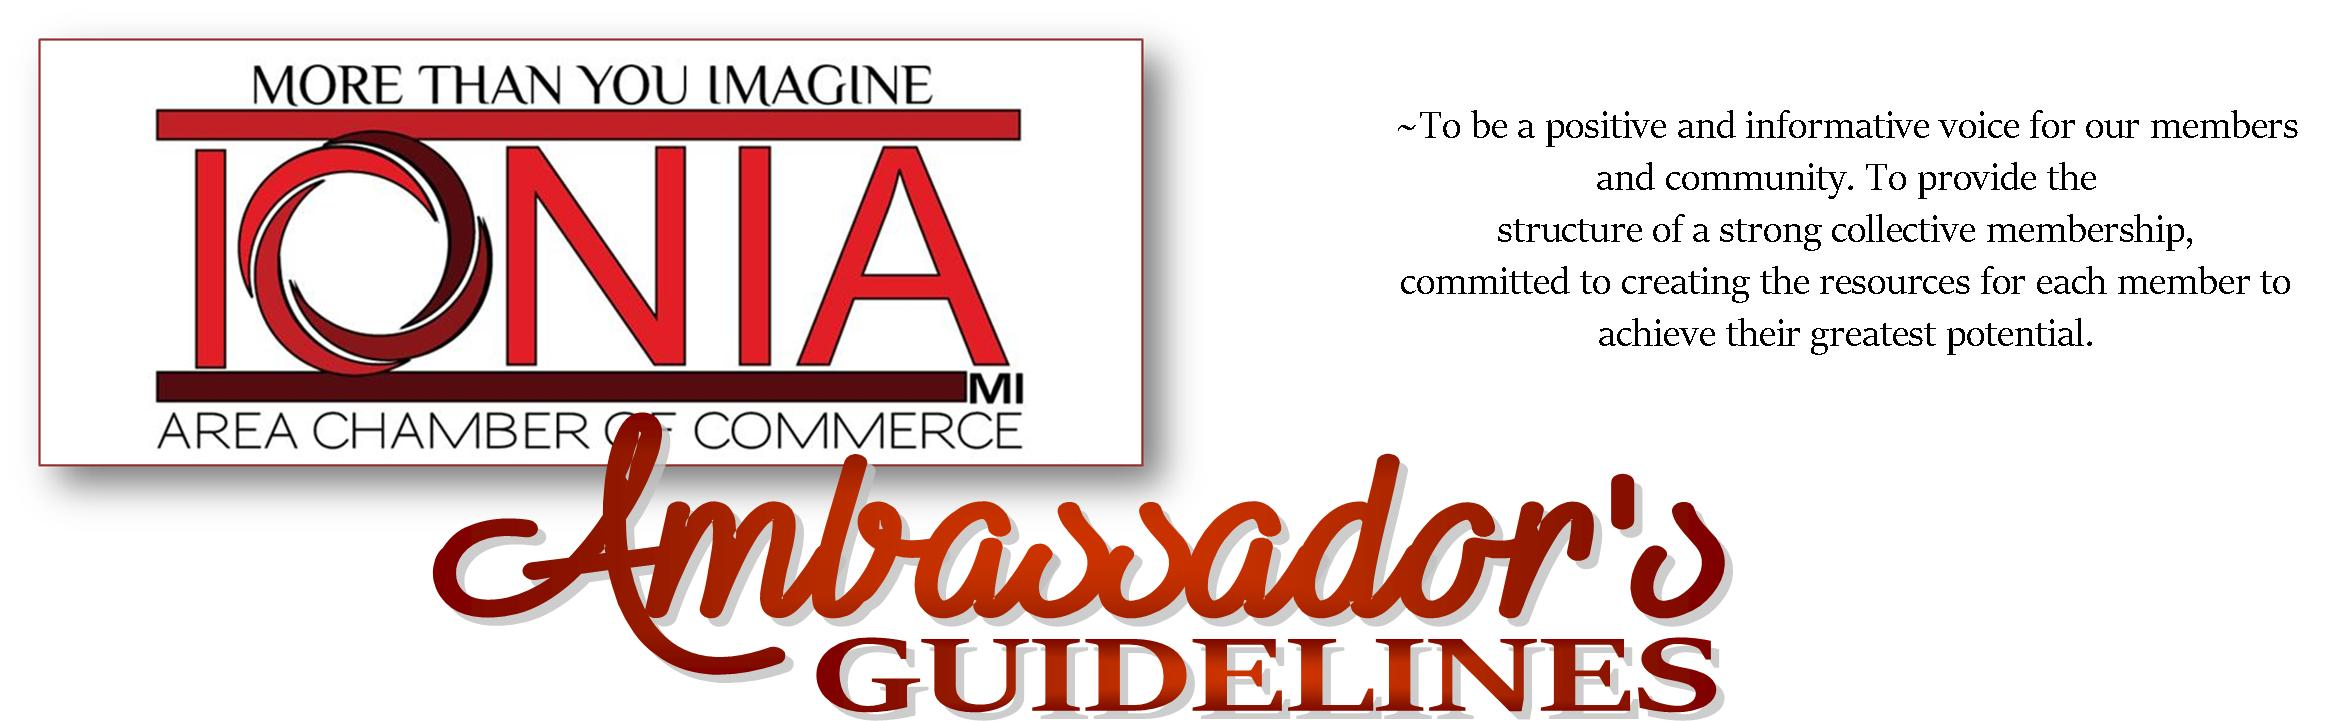 AMB_Guidelines